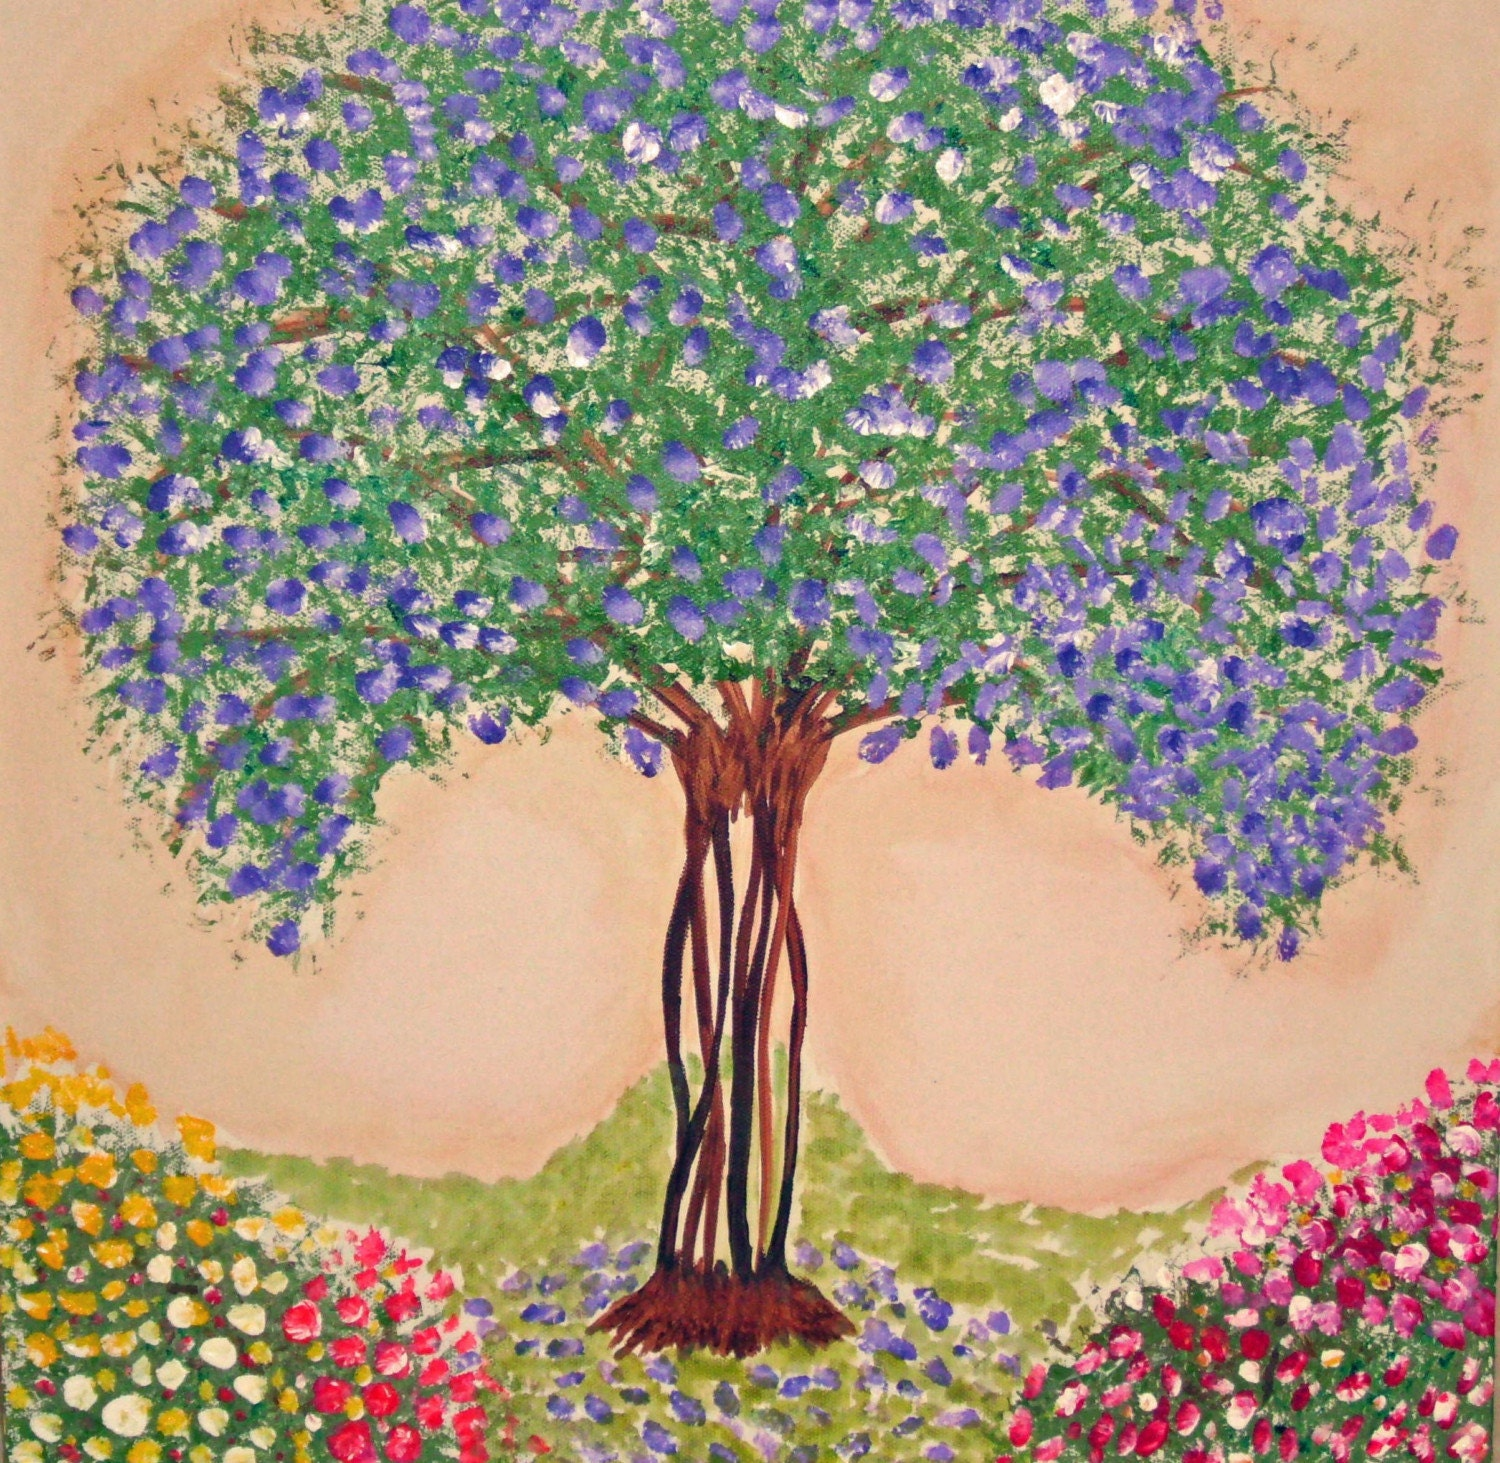 Weekend Sale Original Painting on Canvas 18x18 Whimsical Crape Myrtle Blossom Tree